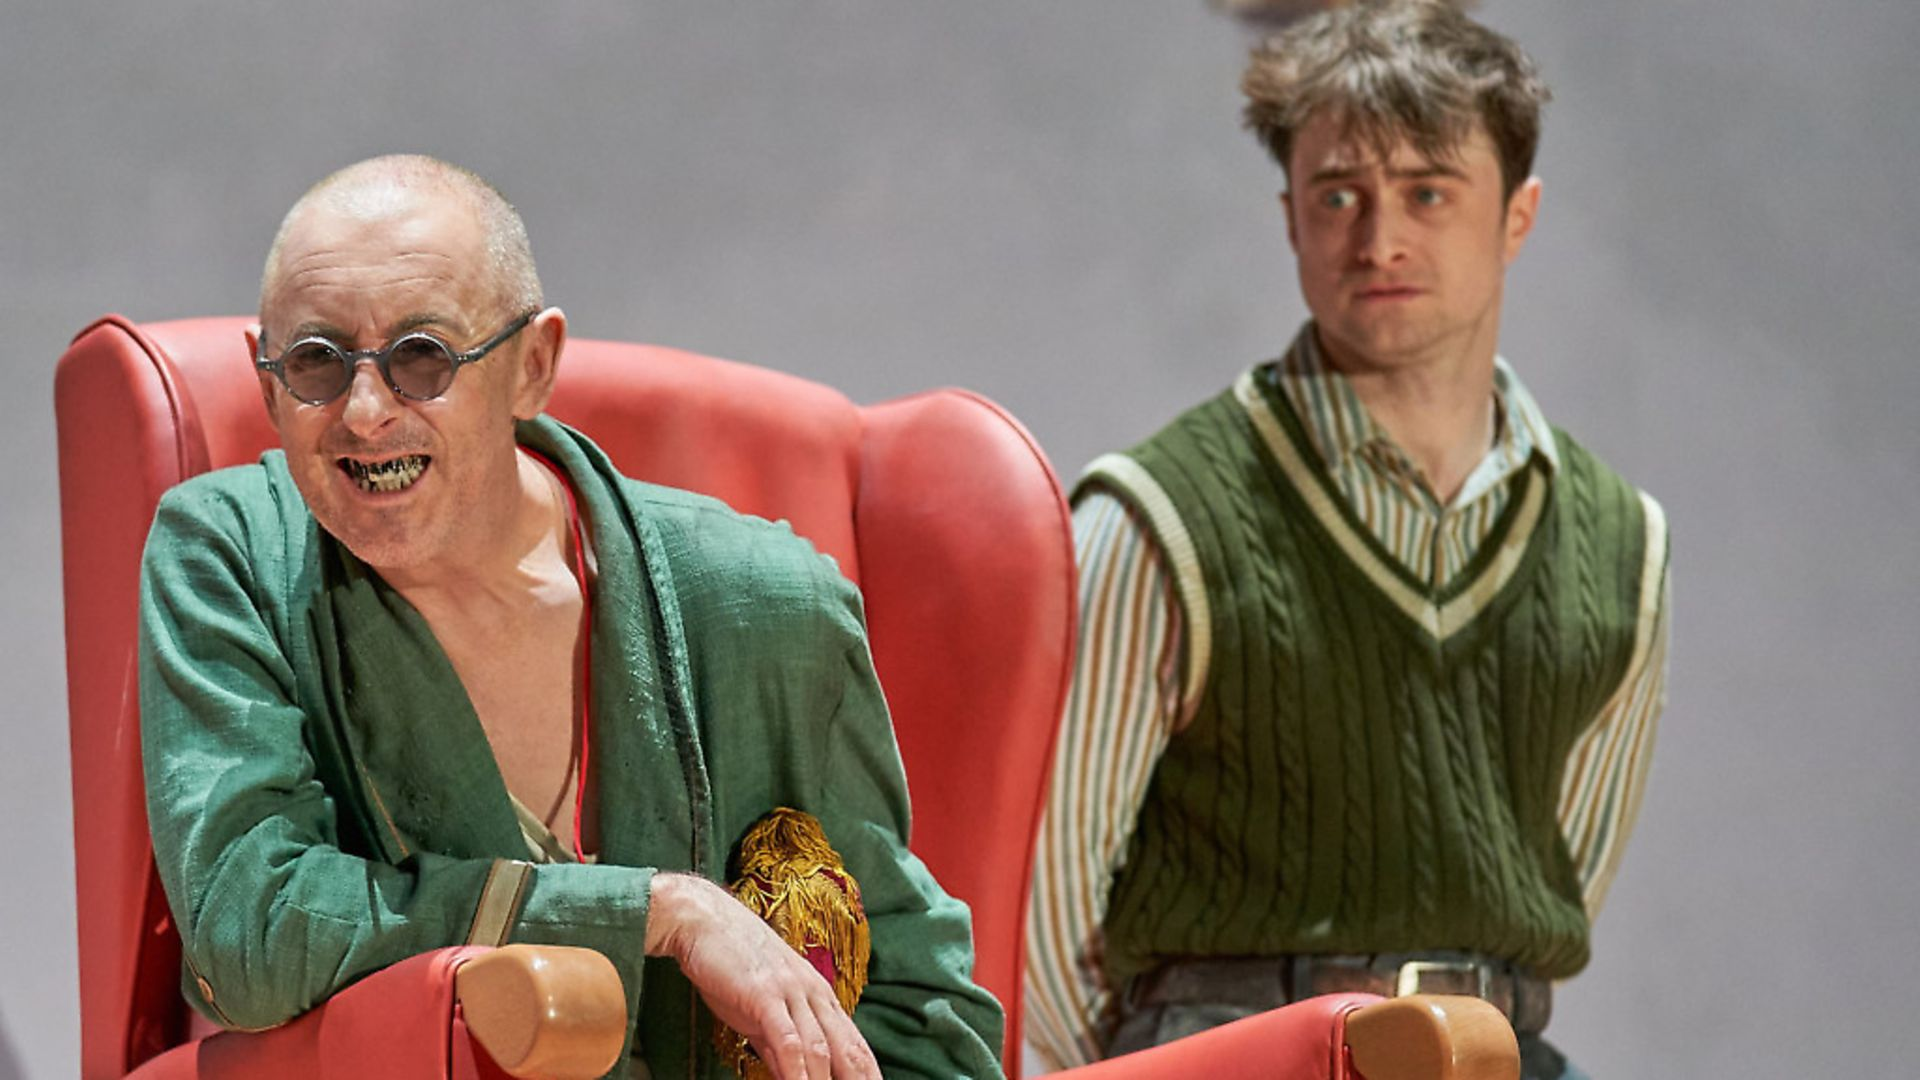 Alan Cumming and Daniel Radcliffe in Endgame. Photo: contributed - Credit: Archant